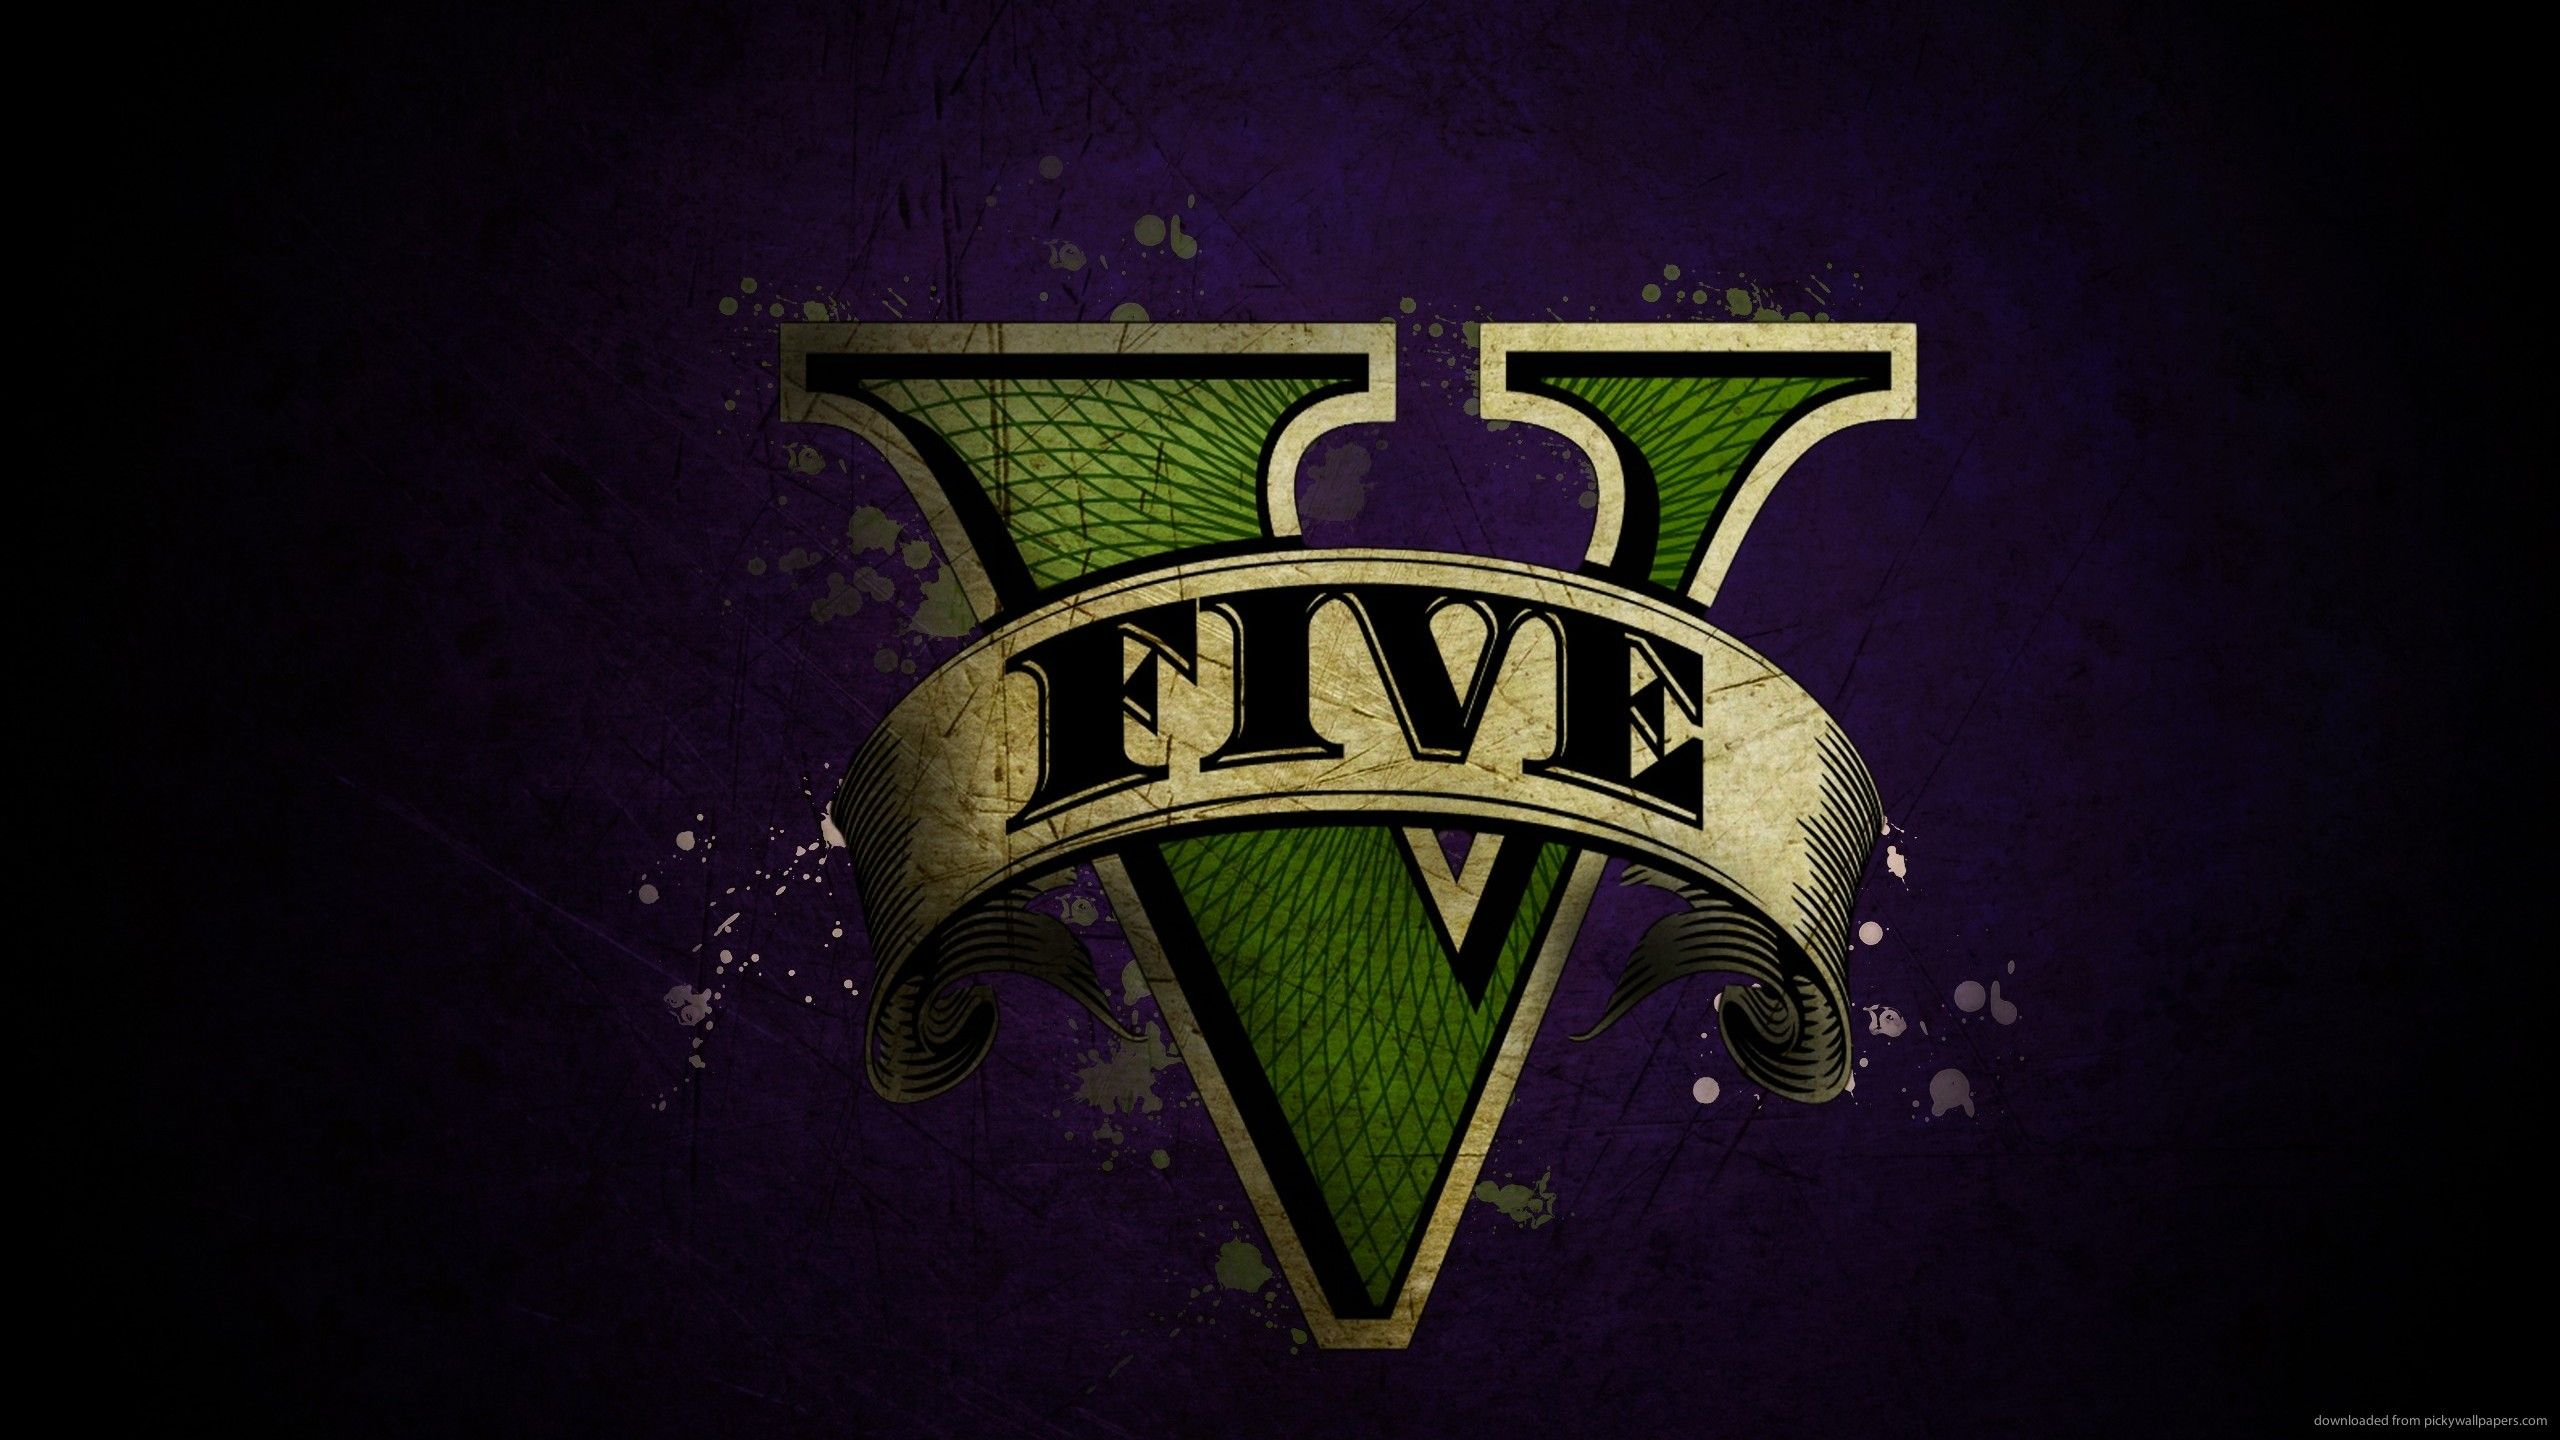 Gta 5 Logo Download 2560x1440 GTA 5 Logo Wallpaper